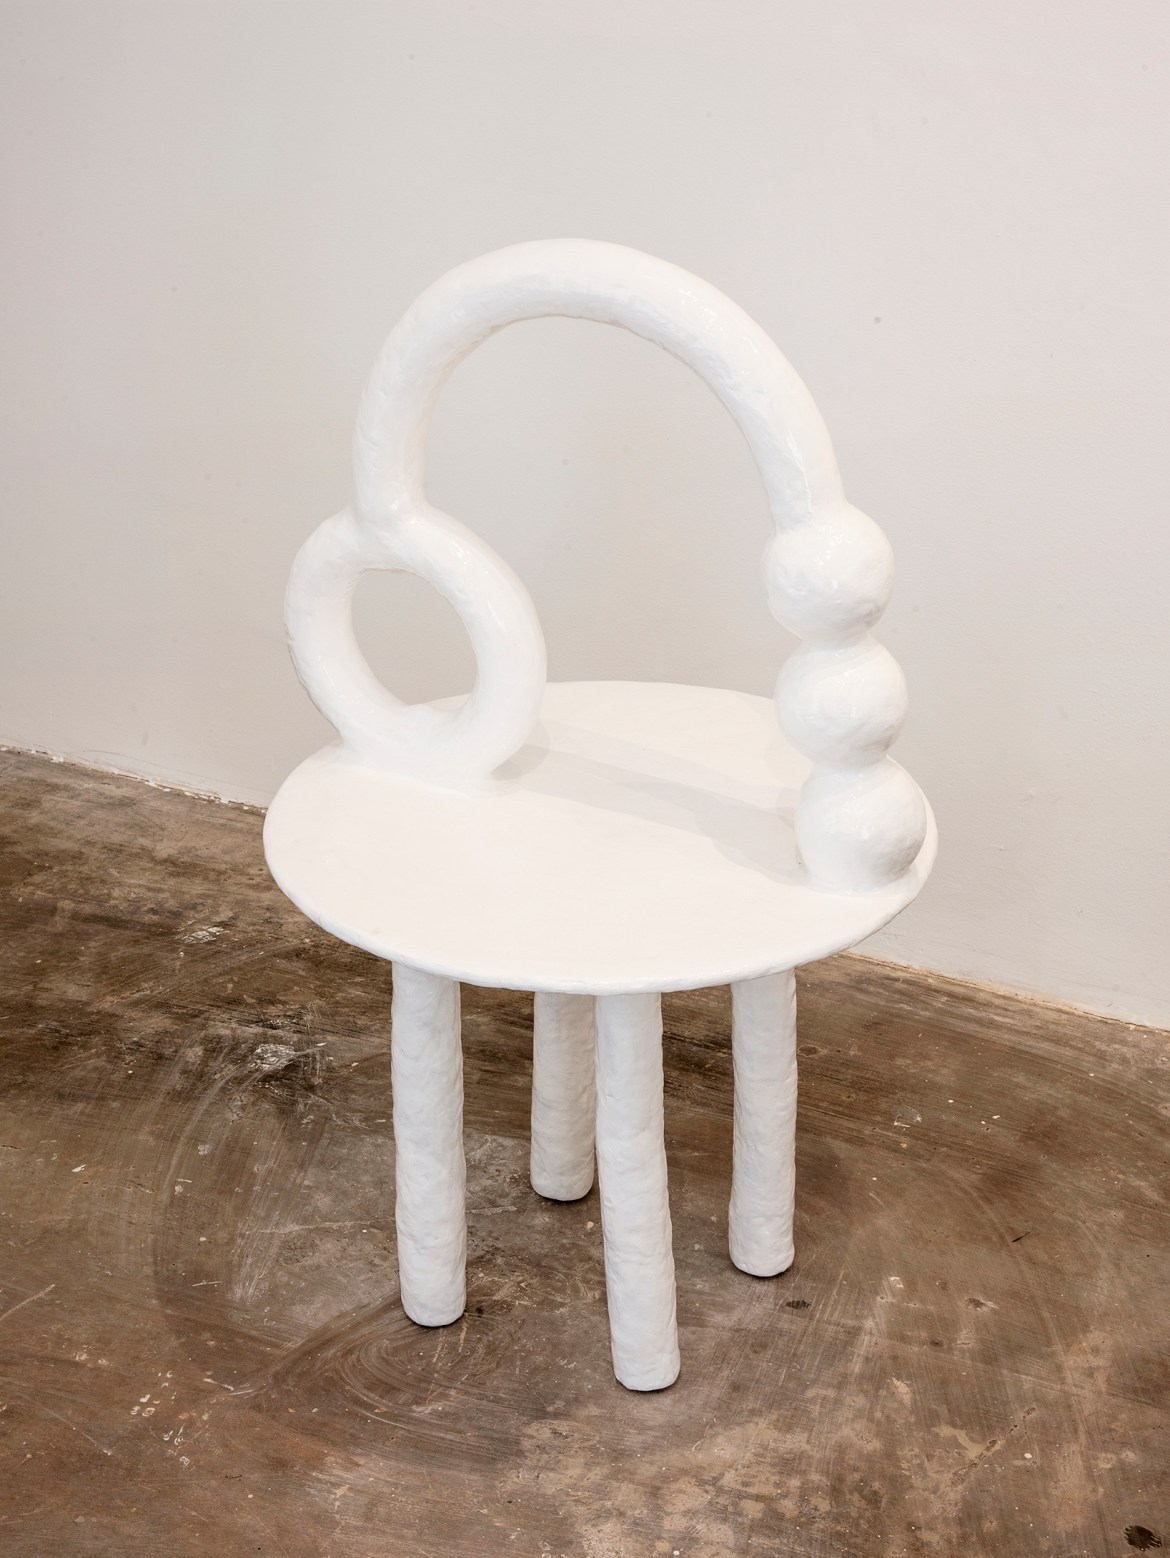 An organic white design chair designed by Brazilian artist Camilla D'Anunziata.